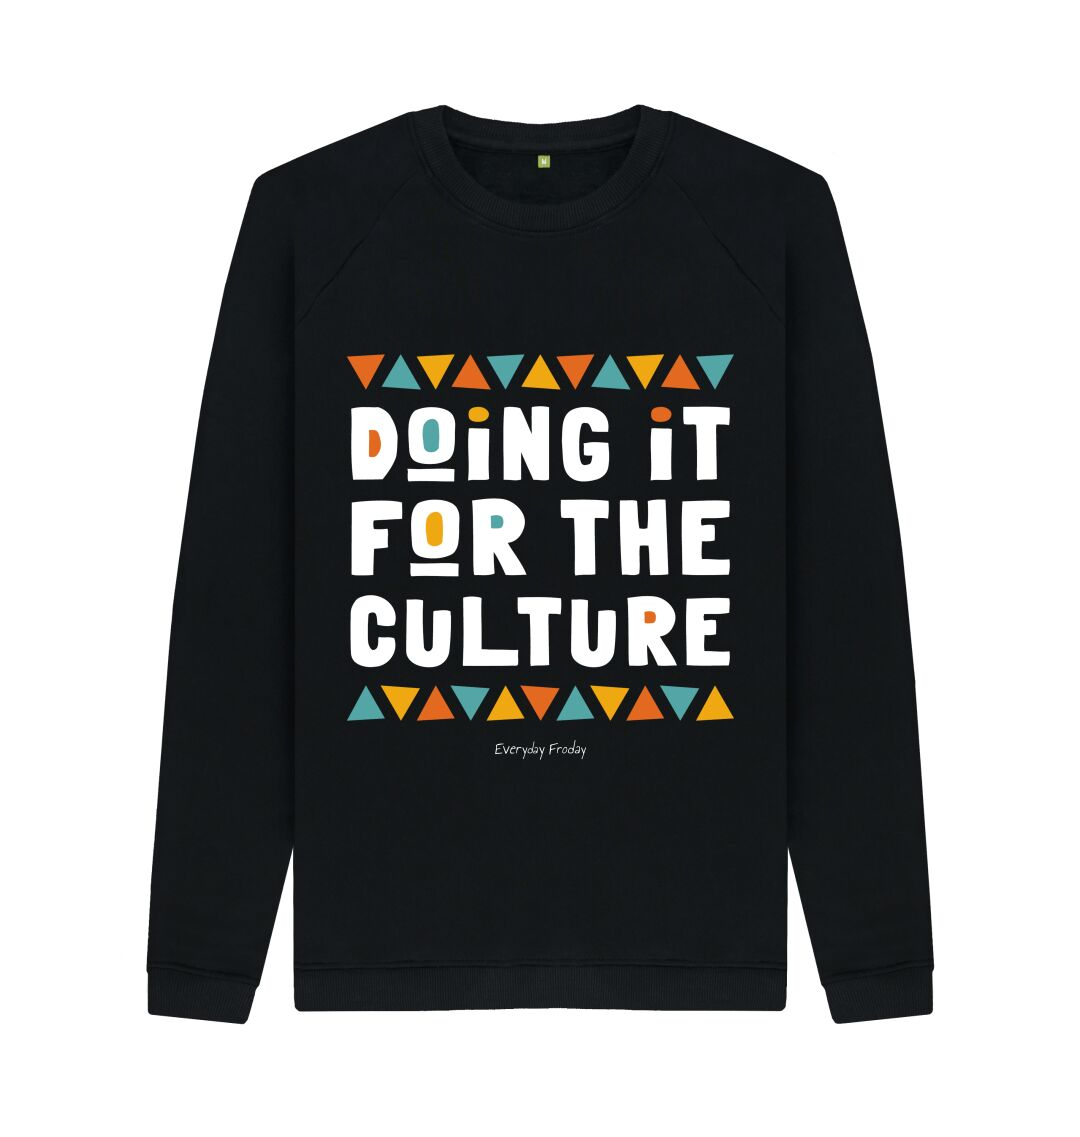 Black Unisex Sweatshirt | Doing it for the culture